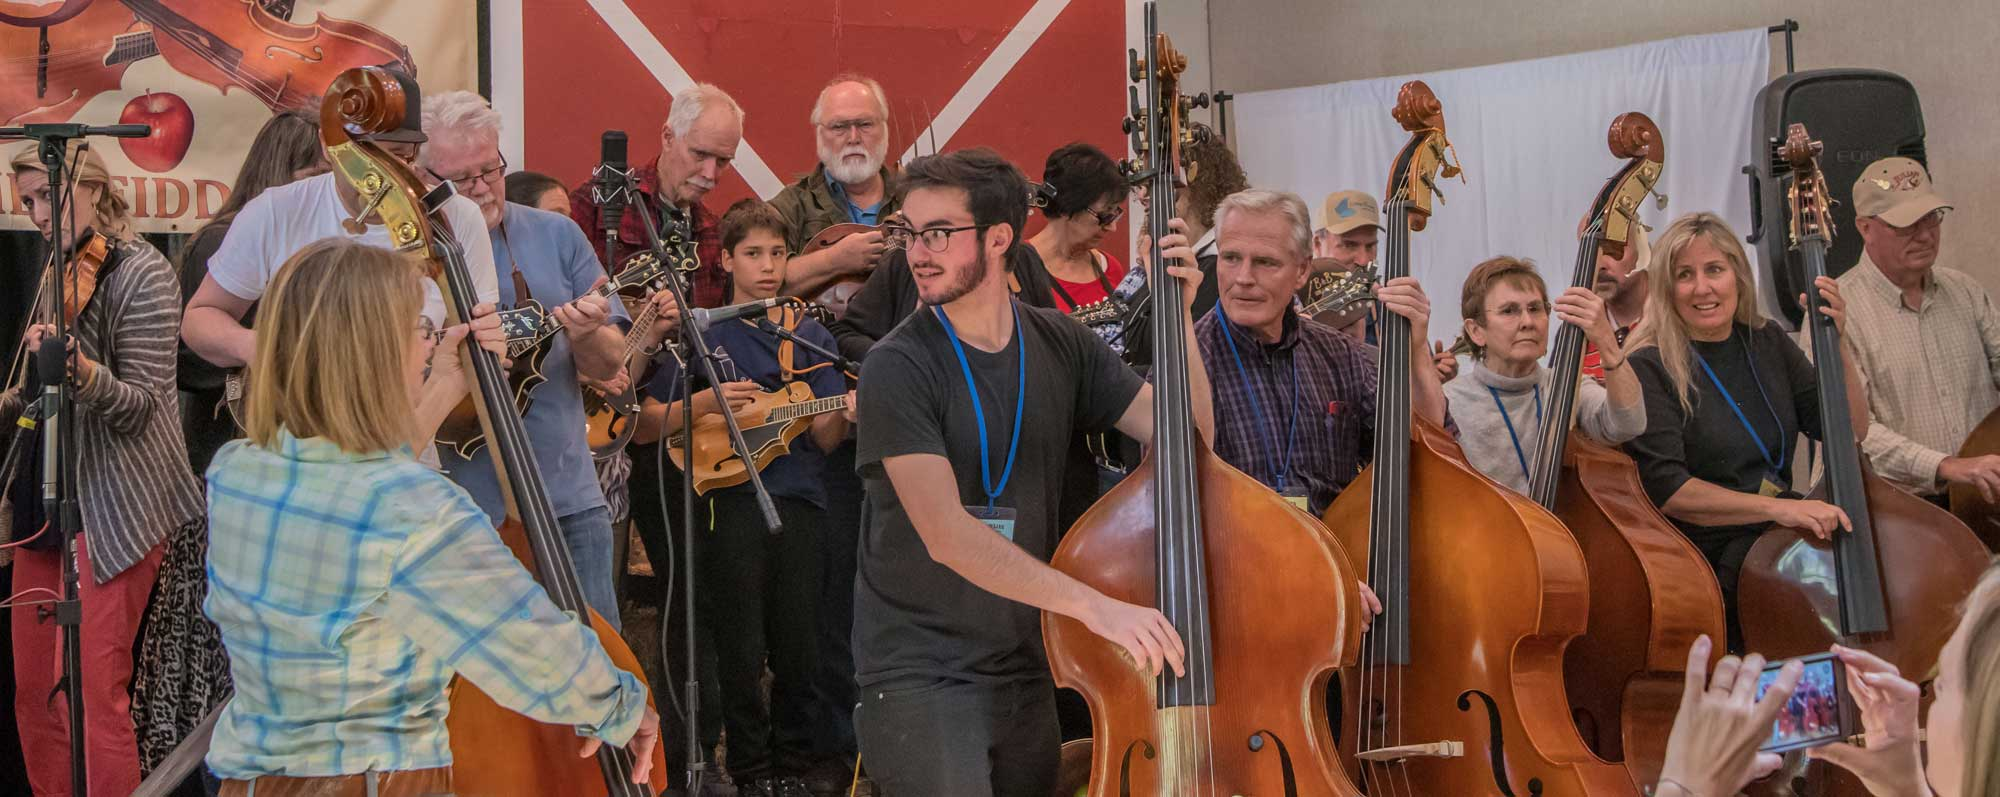 Announcing new Bluegrass Jamming Class in South Miami